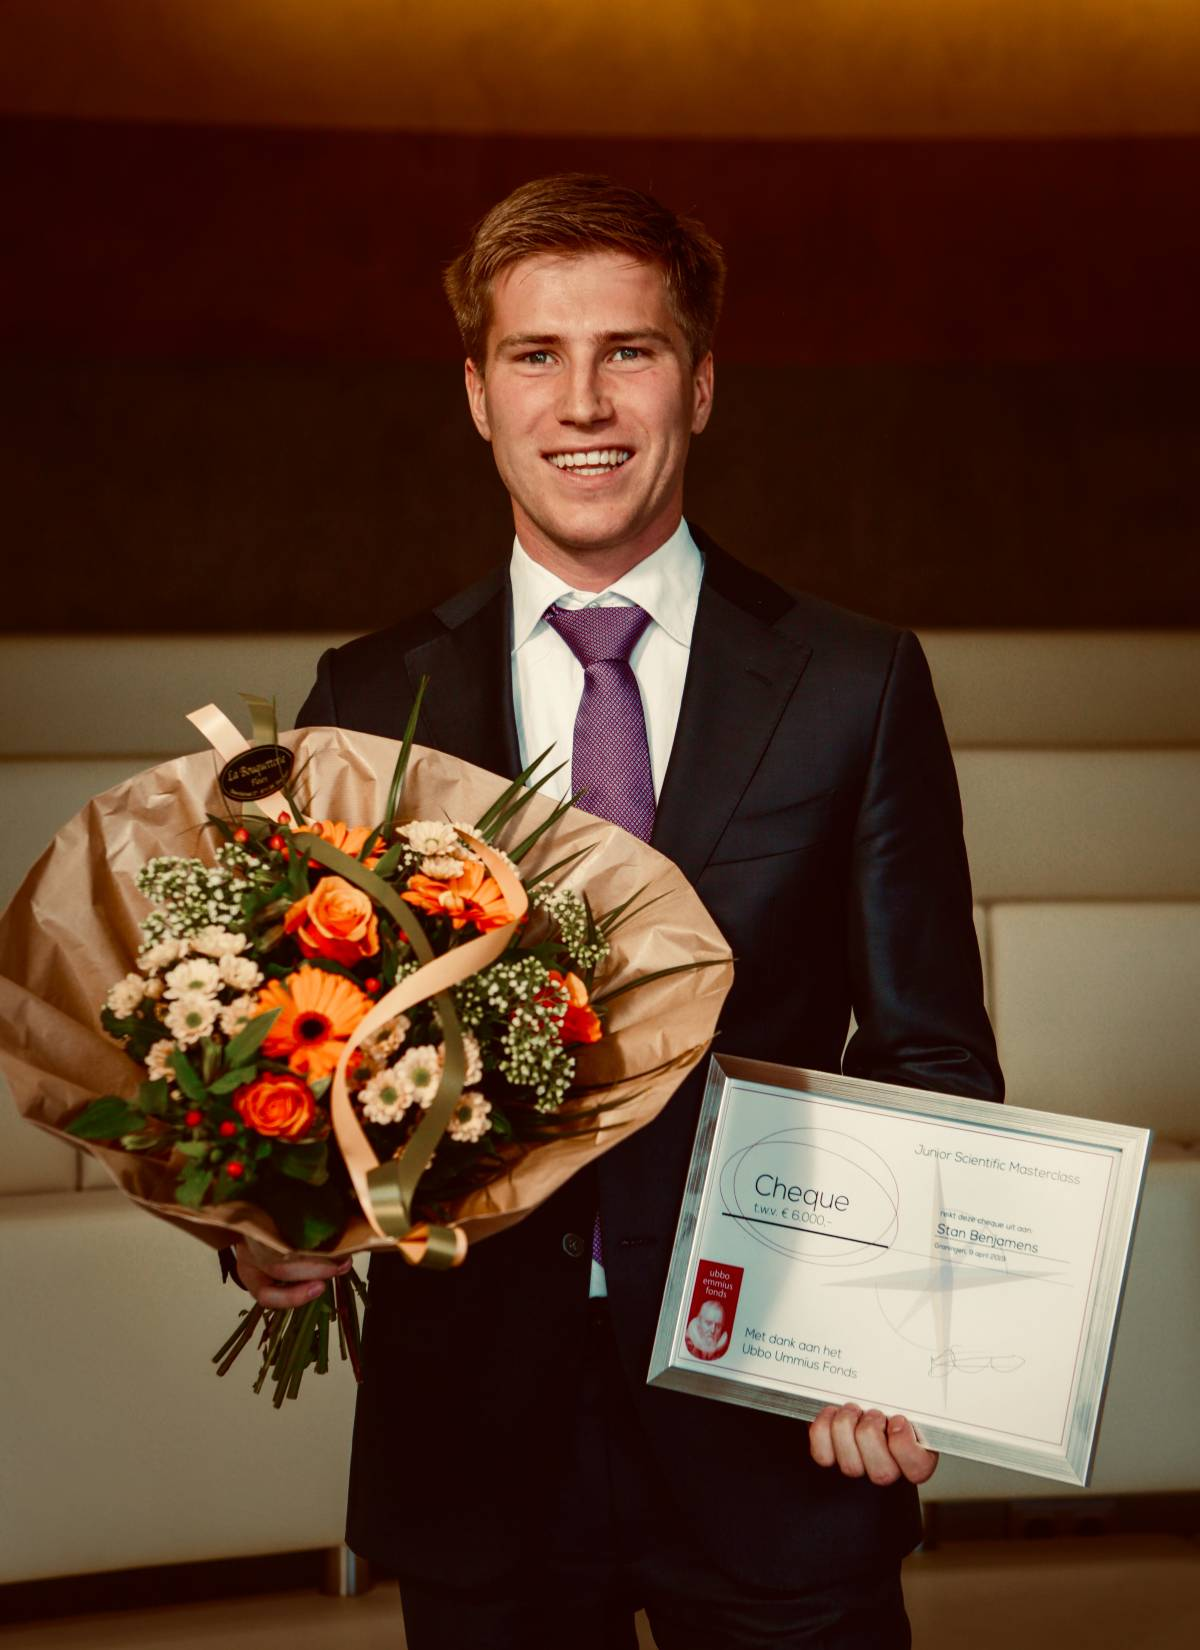 Stan Benjamens wint Junior Scientific Masterclass Talent Grant